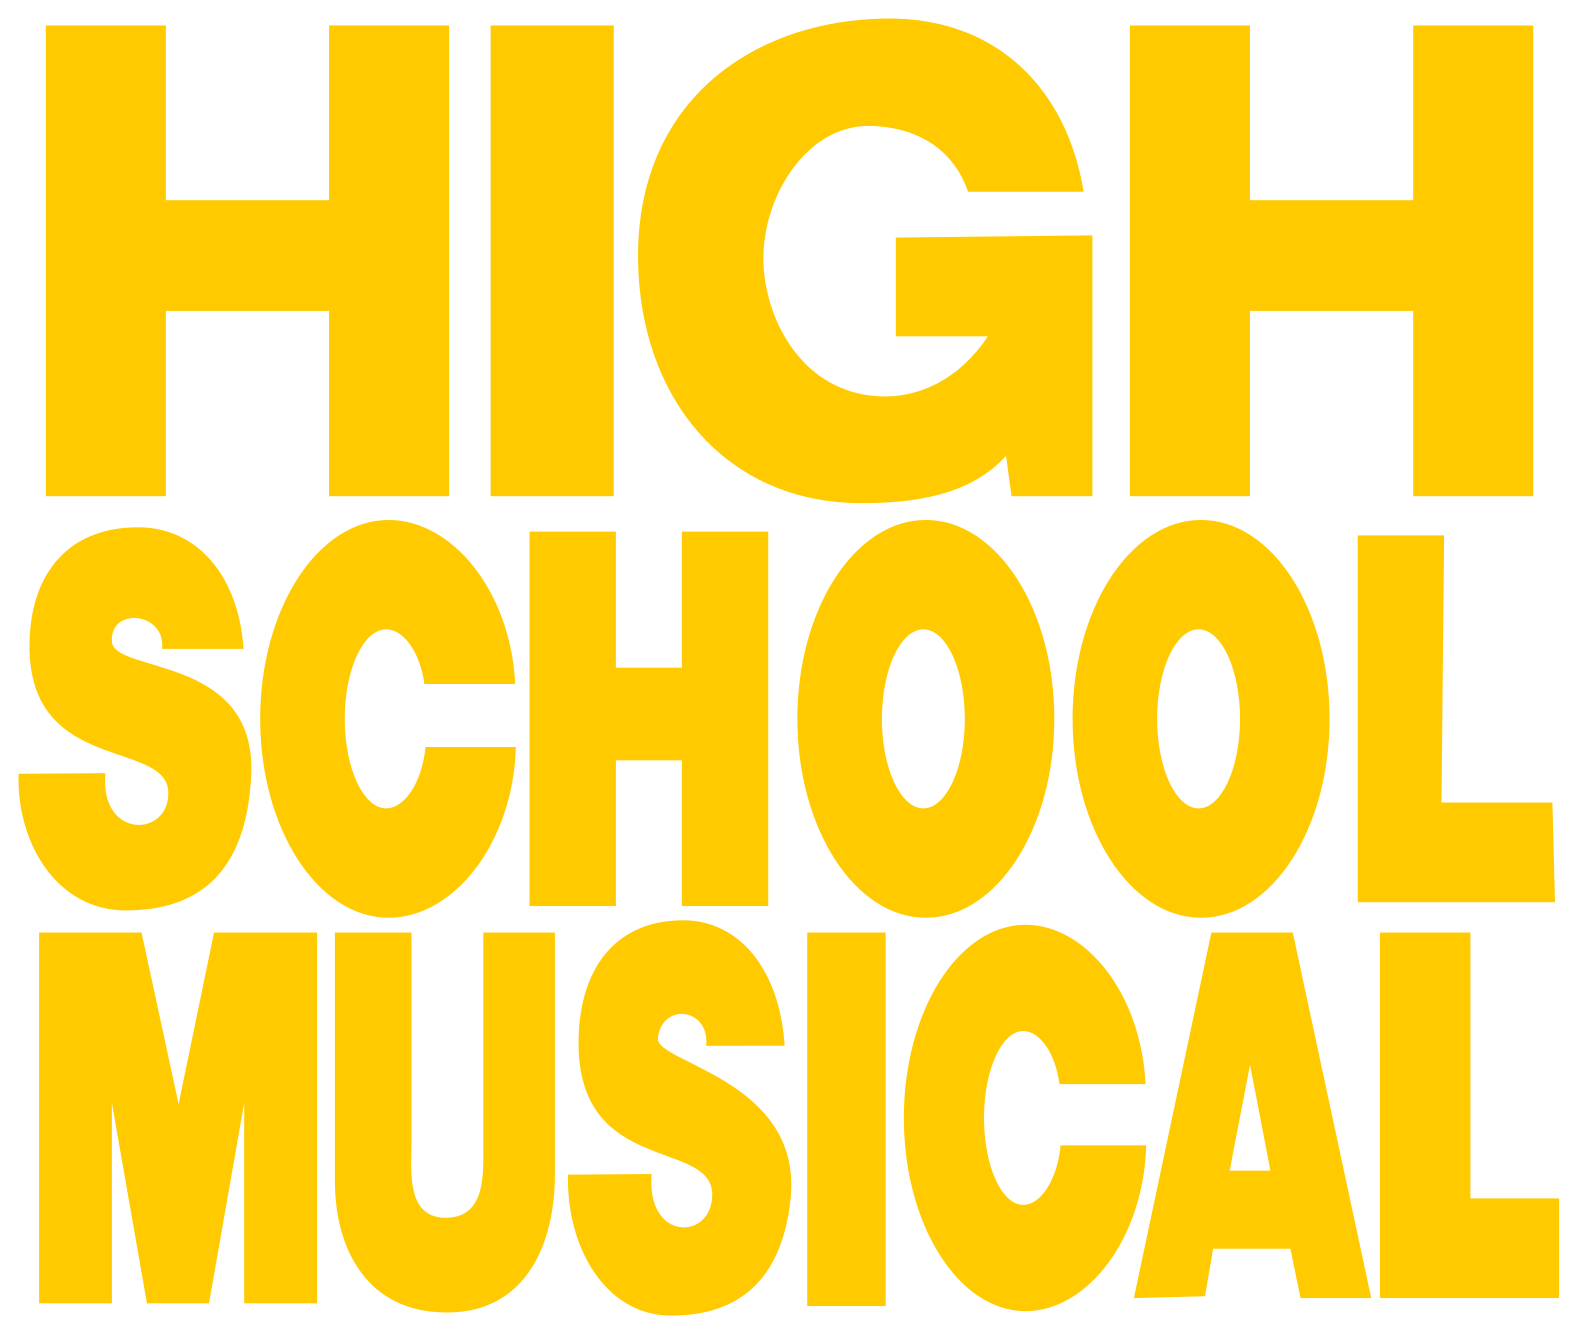 High school musical logo png. File text wikimedia commons